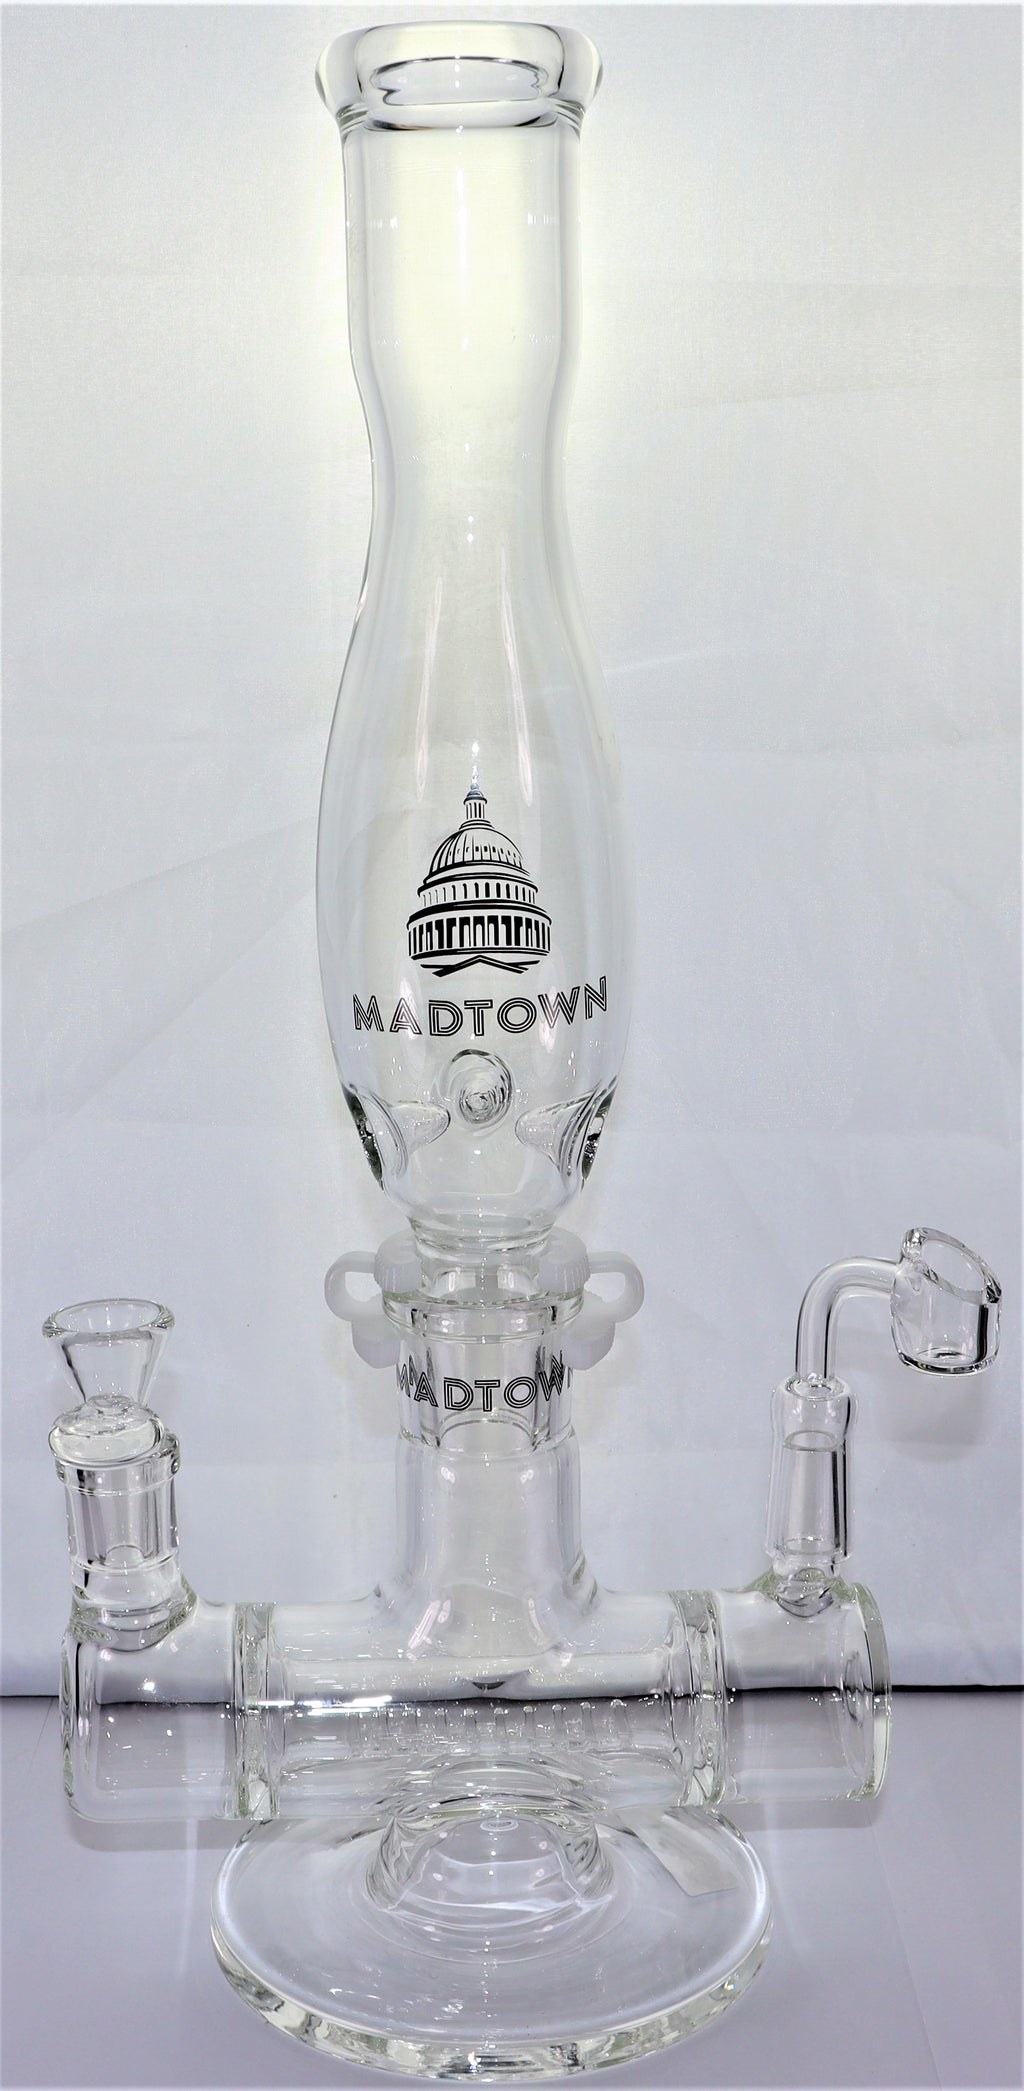 Madtown Water Pipe - Double Barrel - AZARA VAPE